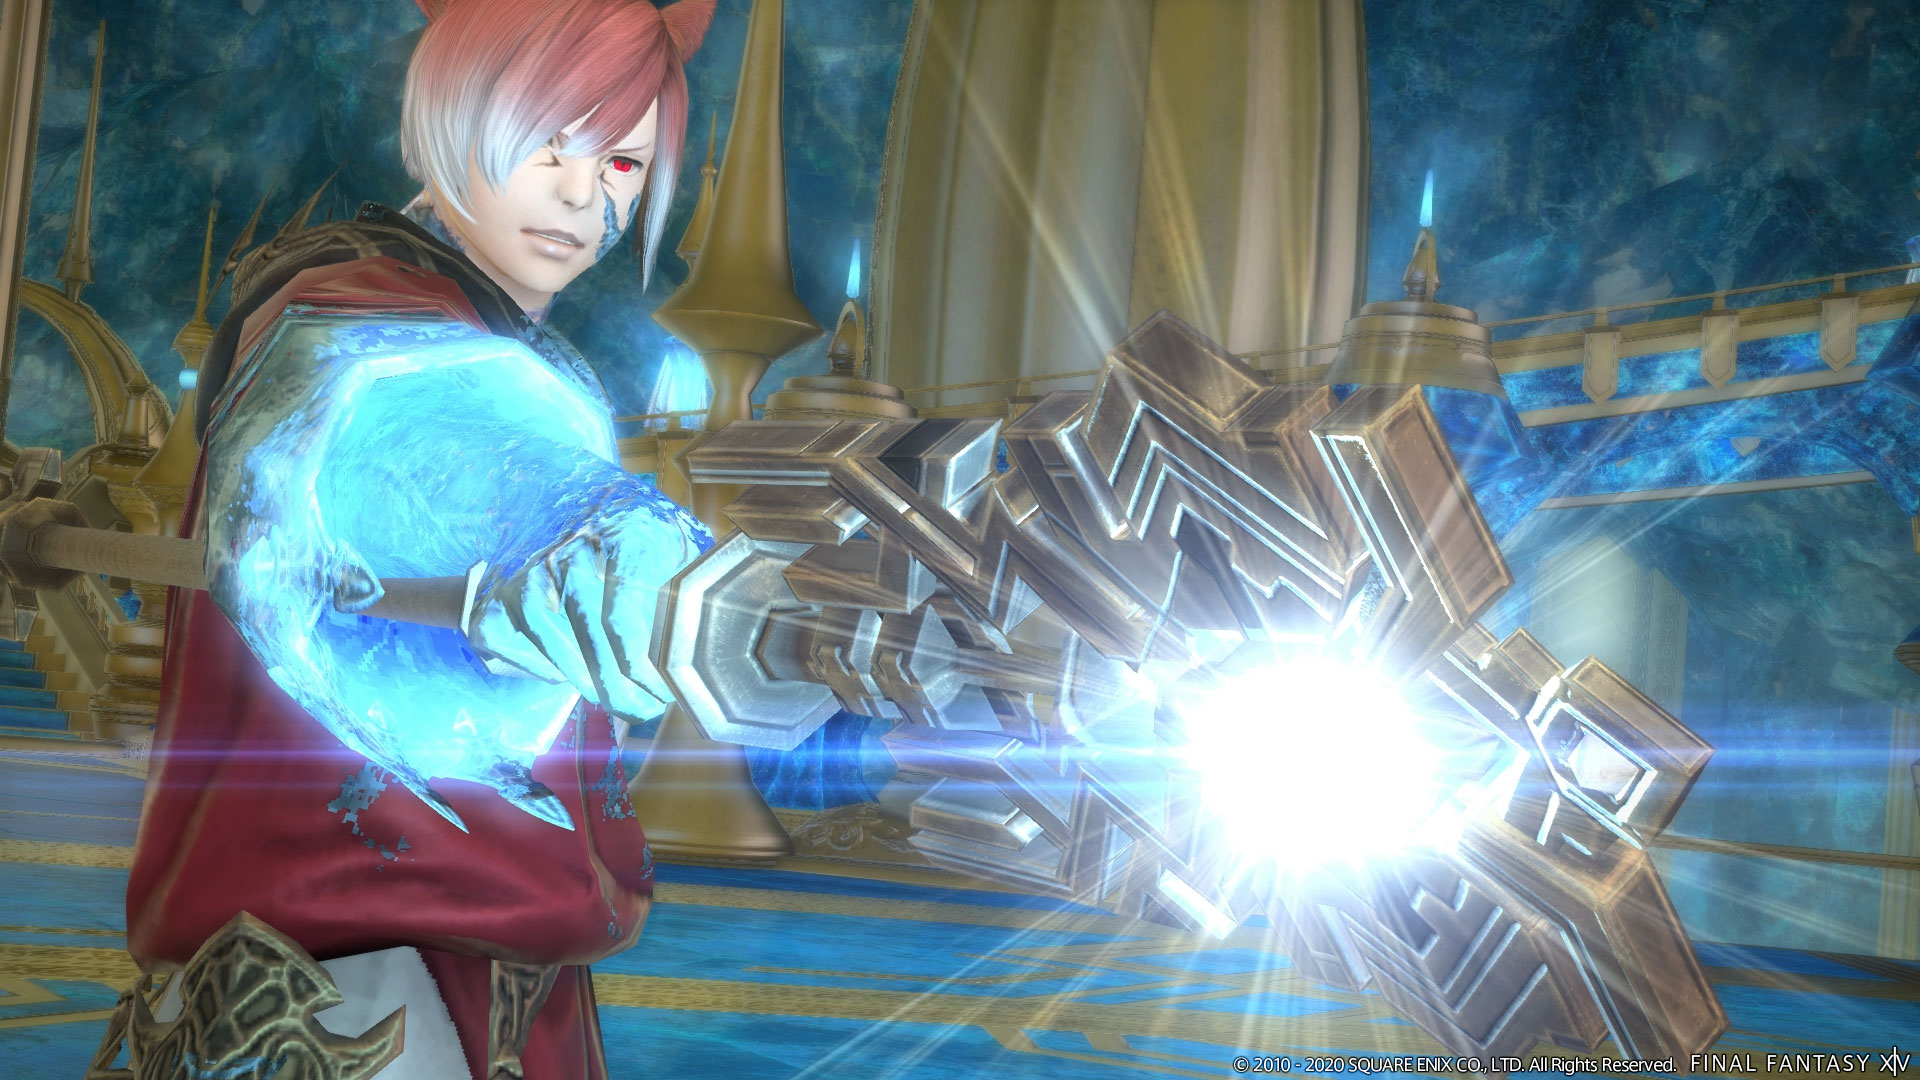 A red and white haired Final Fantasy character holds up a staff that shines with white light